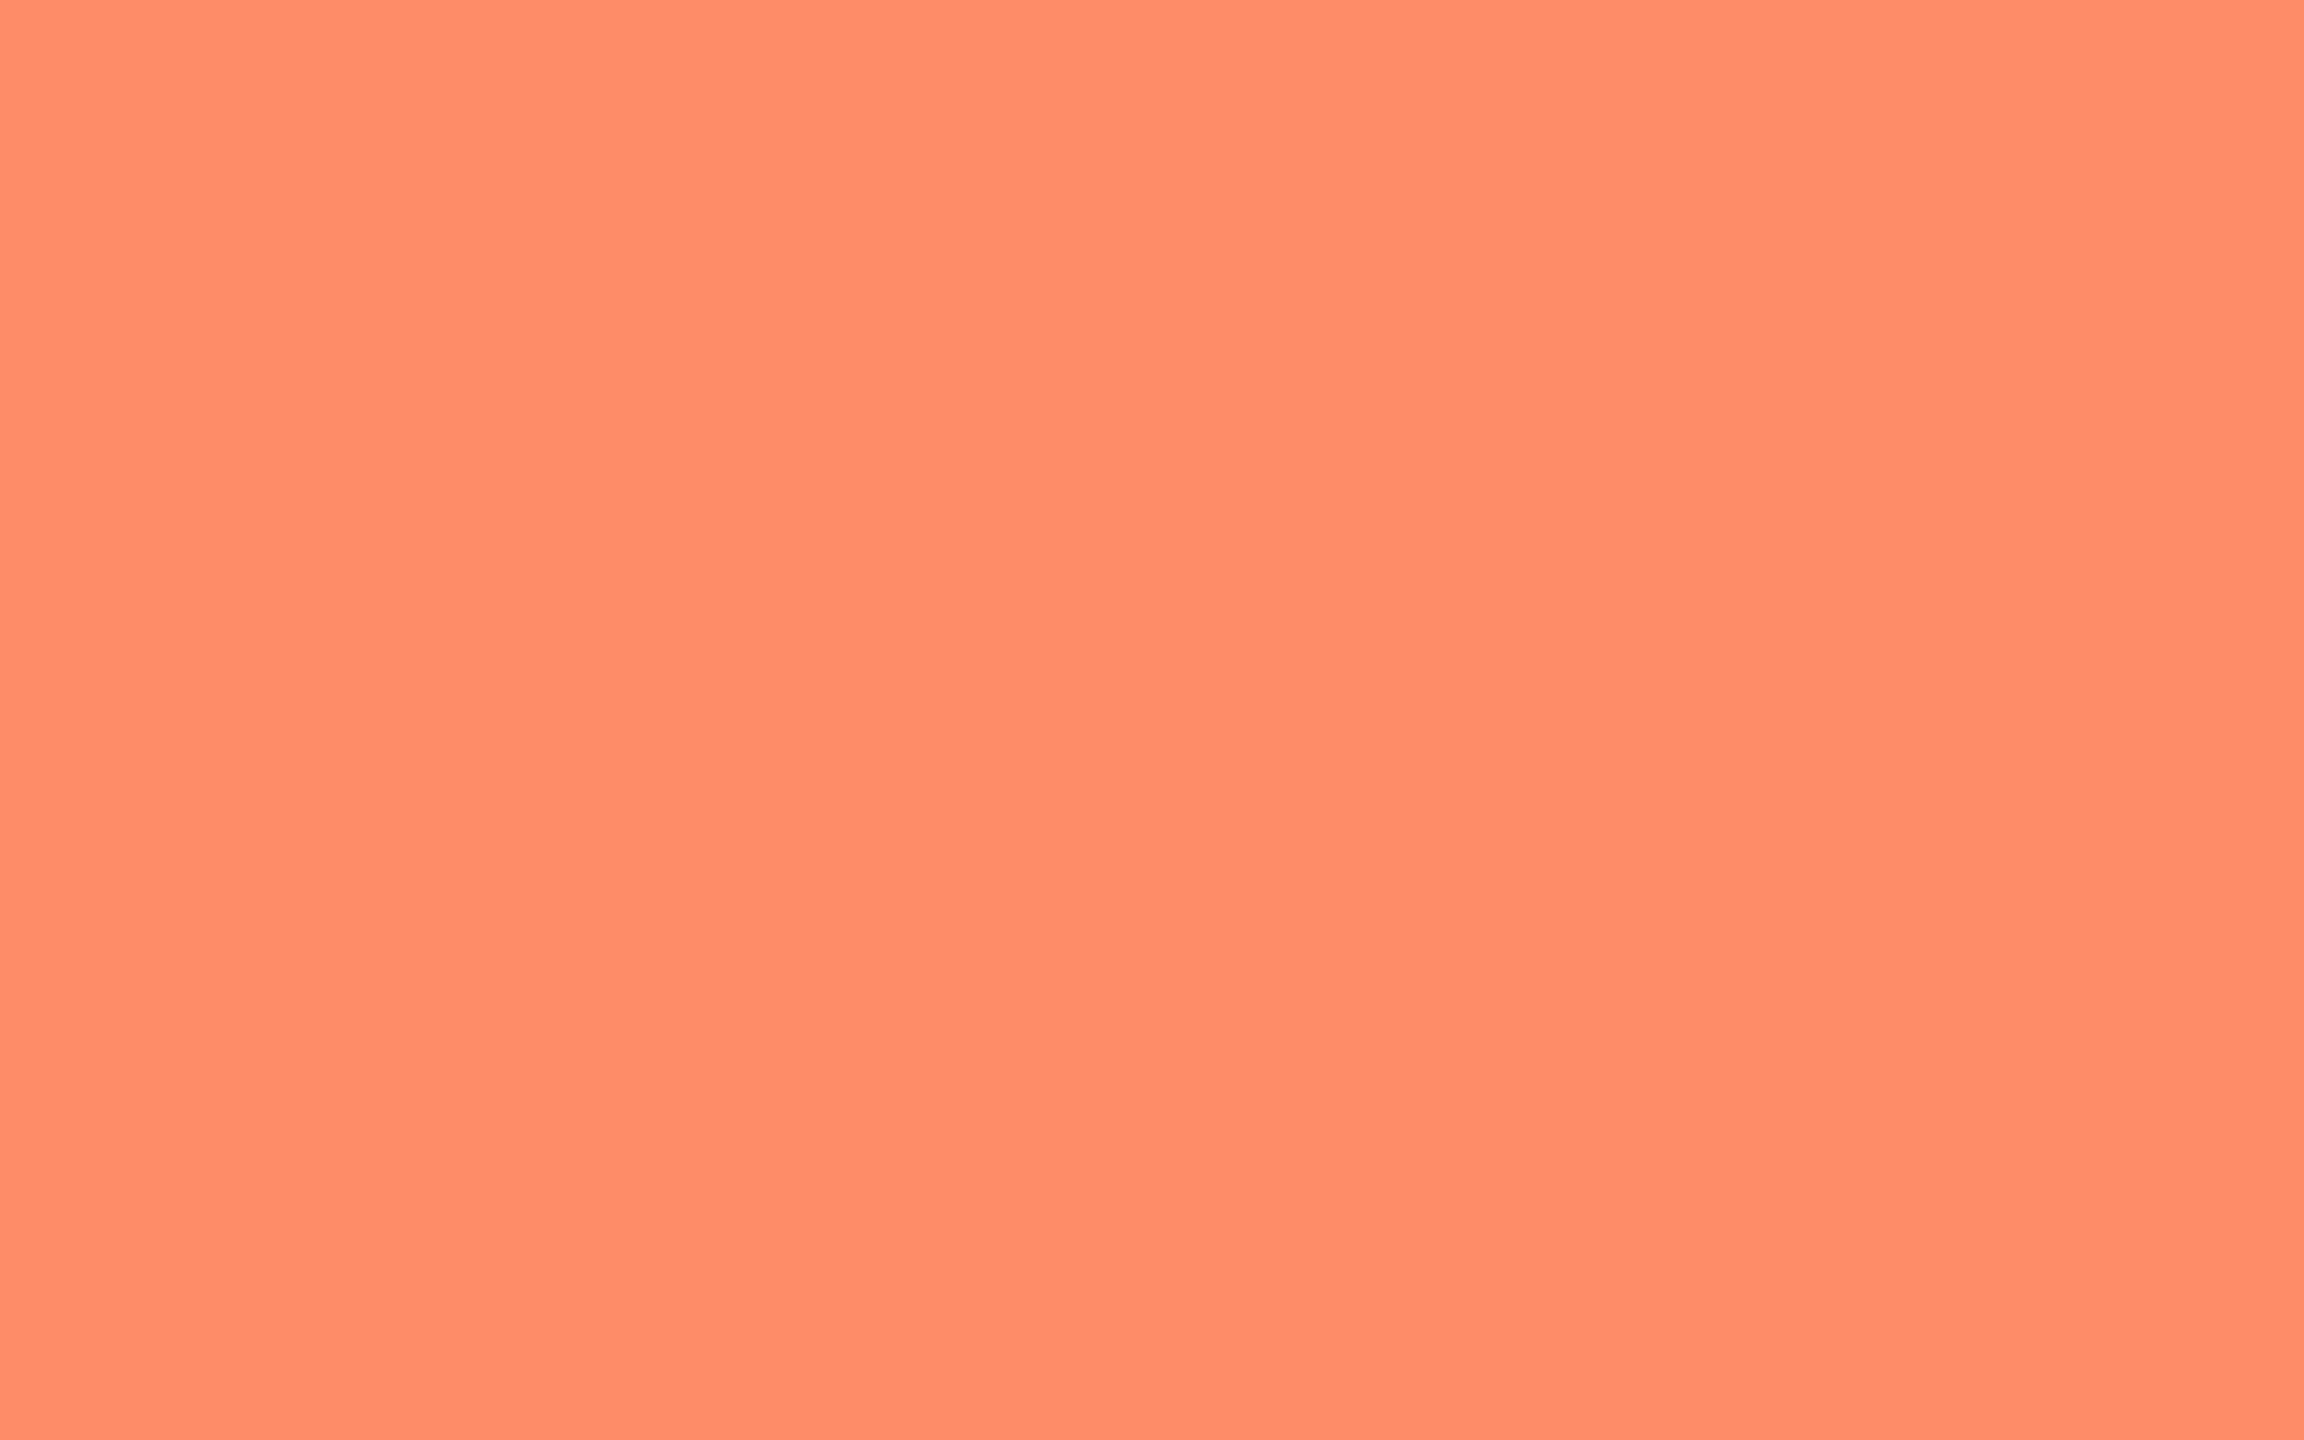 2304x1440 Salmon Solid Color Background